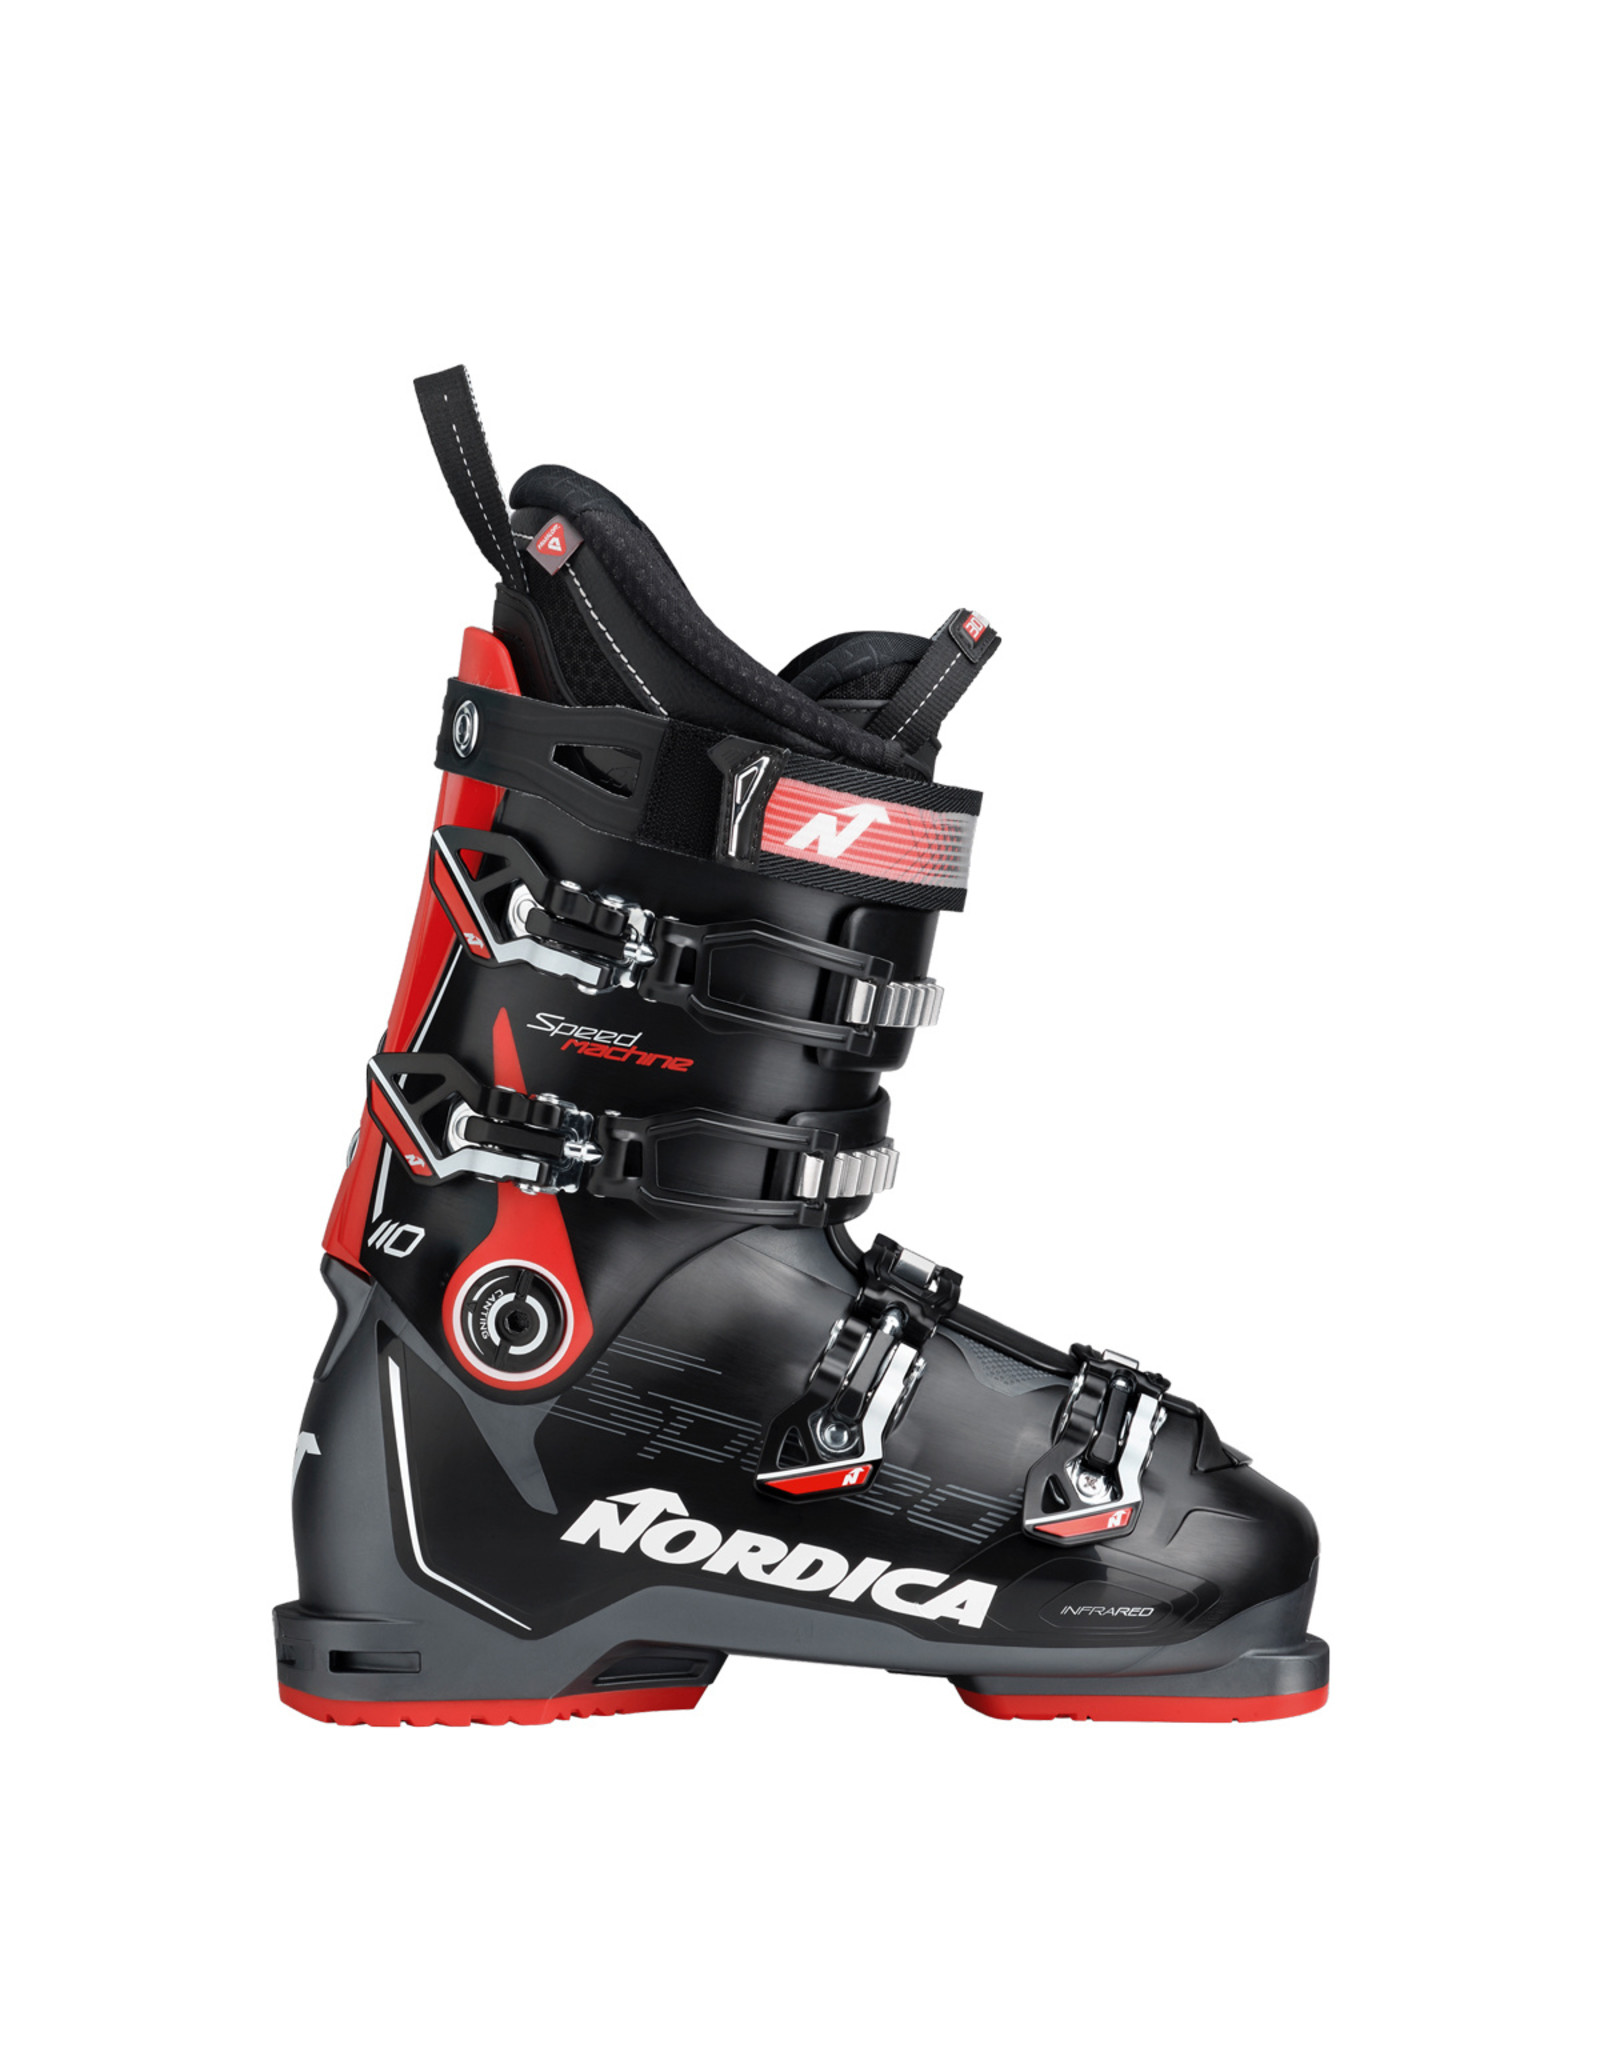 Nordica Speedmachine 110 2021